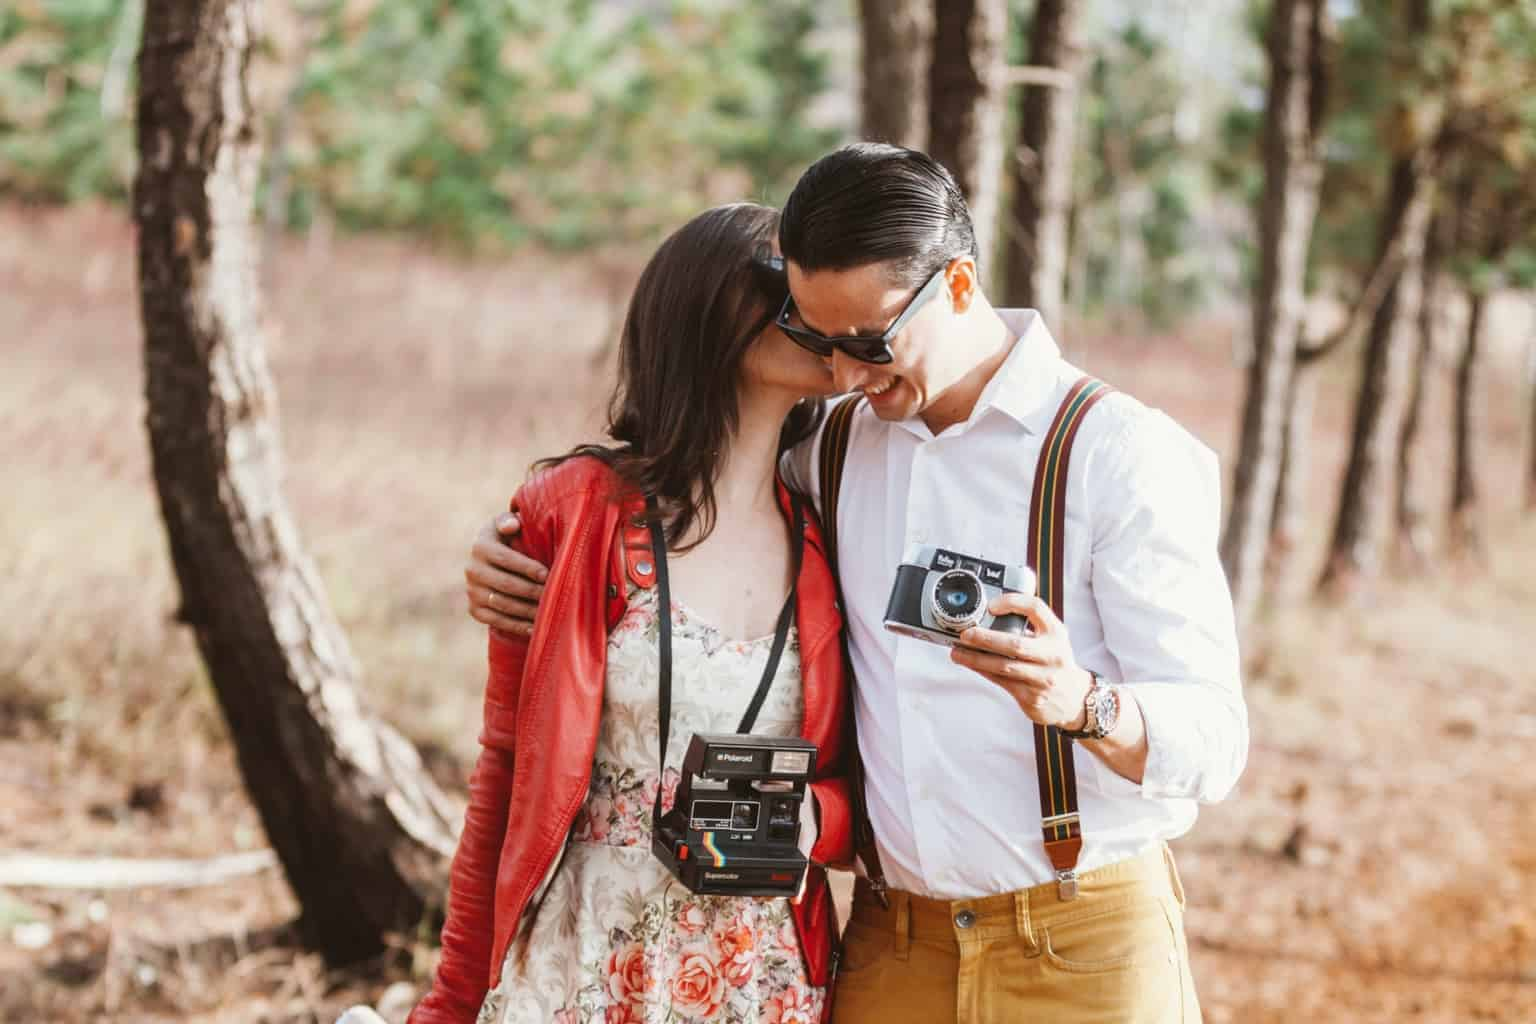 Cute Things to do for your Girlfriend - featured